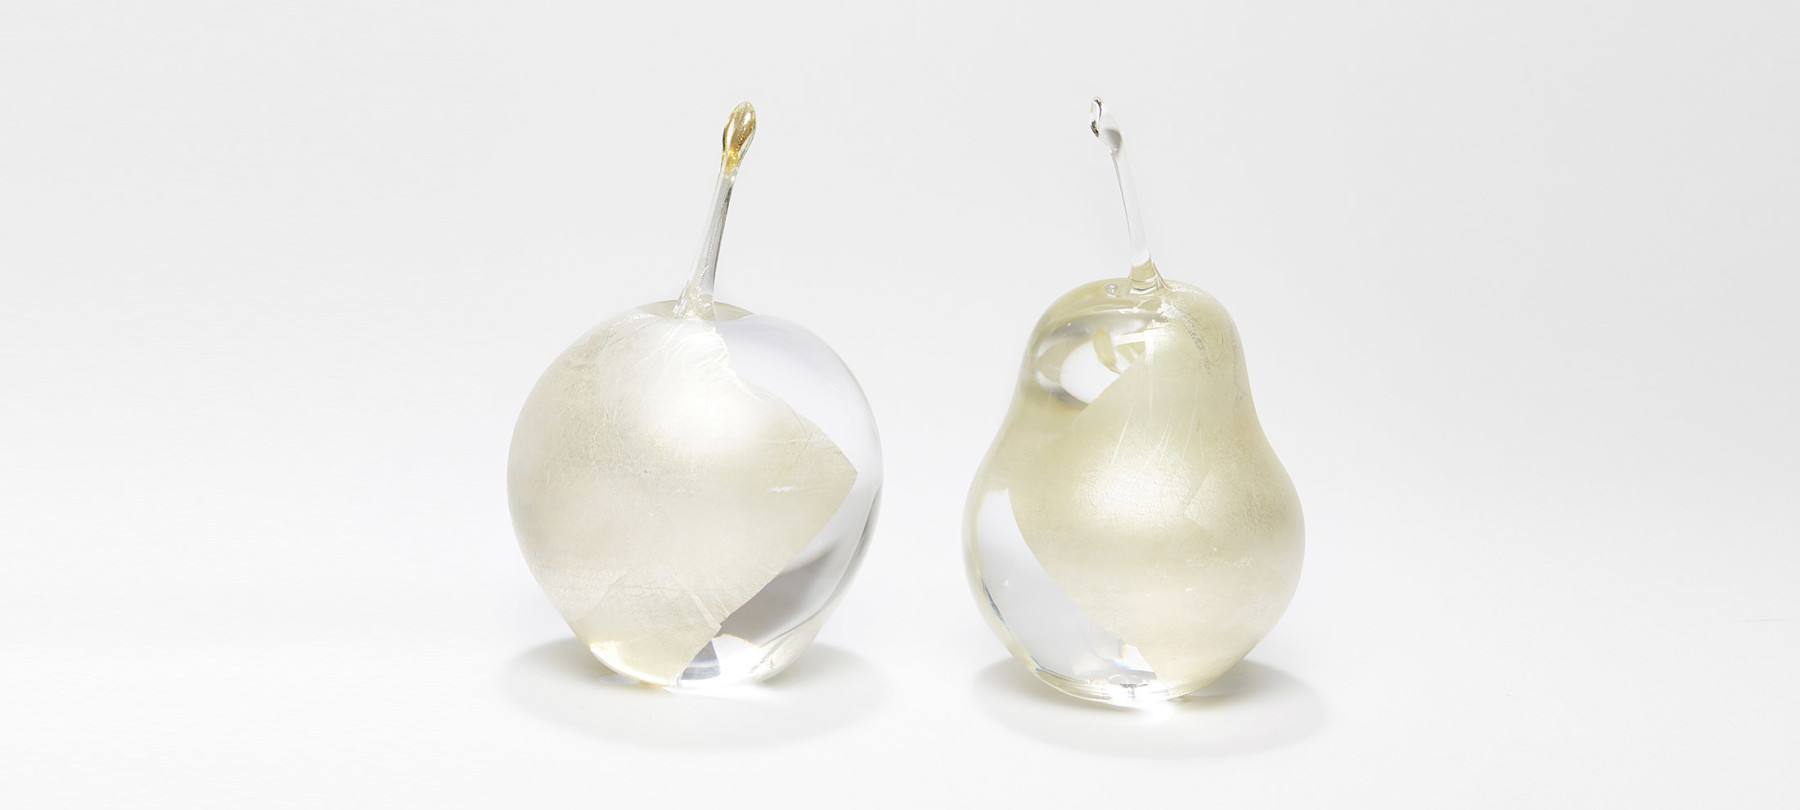 Anthony Scala Gold Apples & Pears